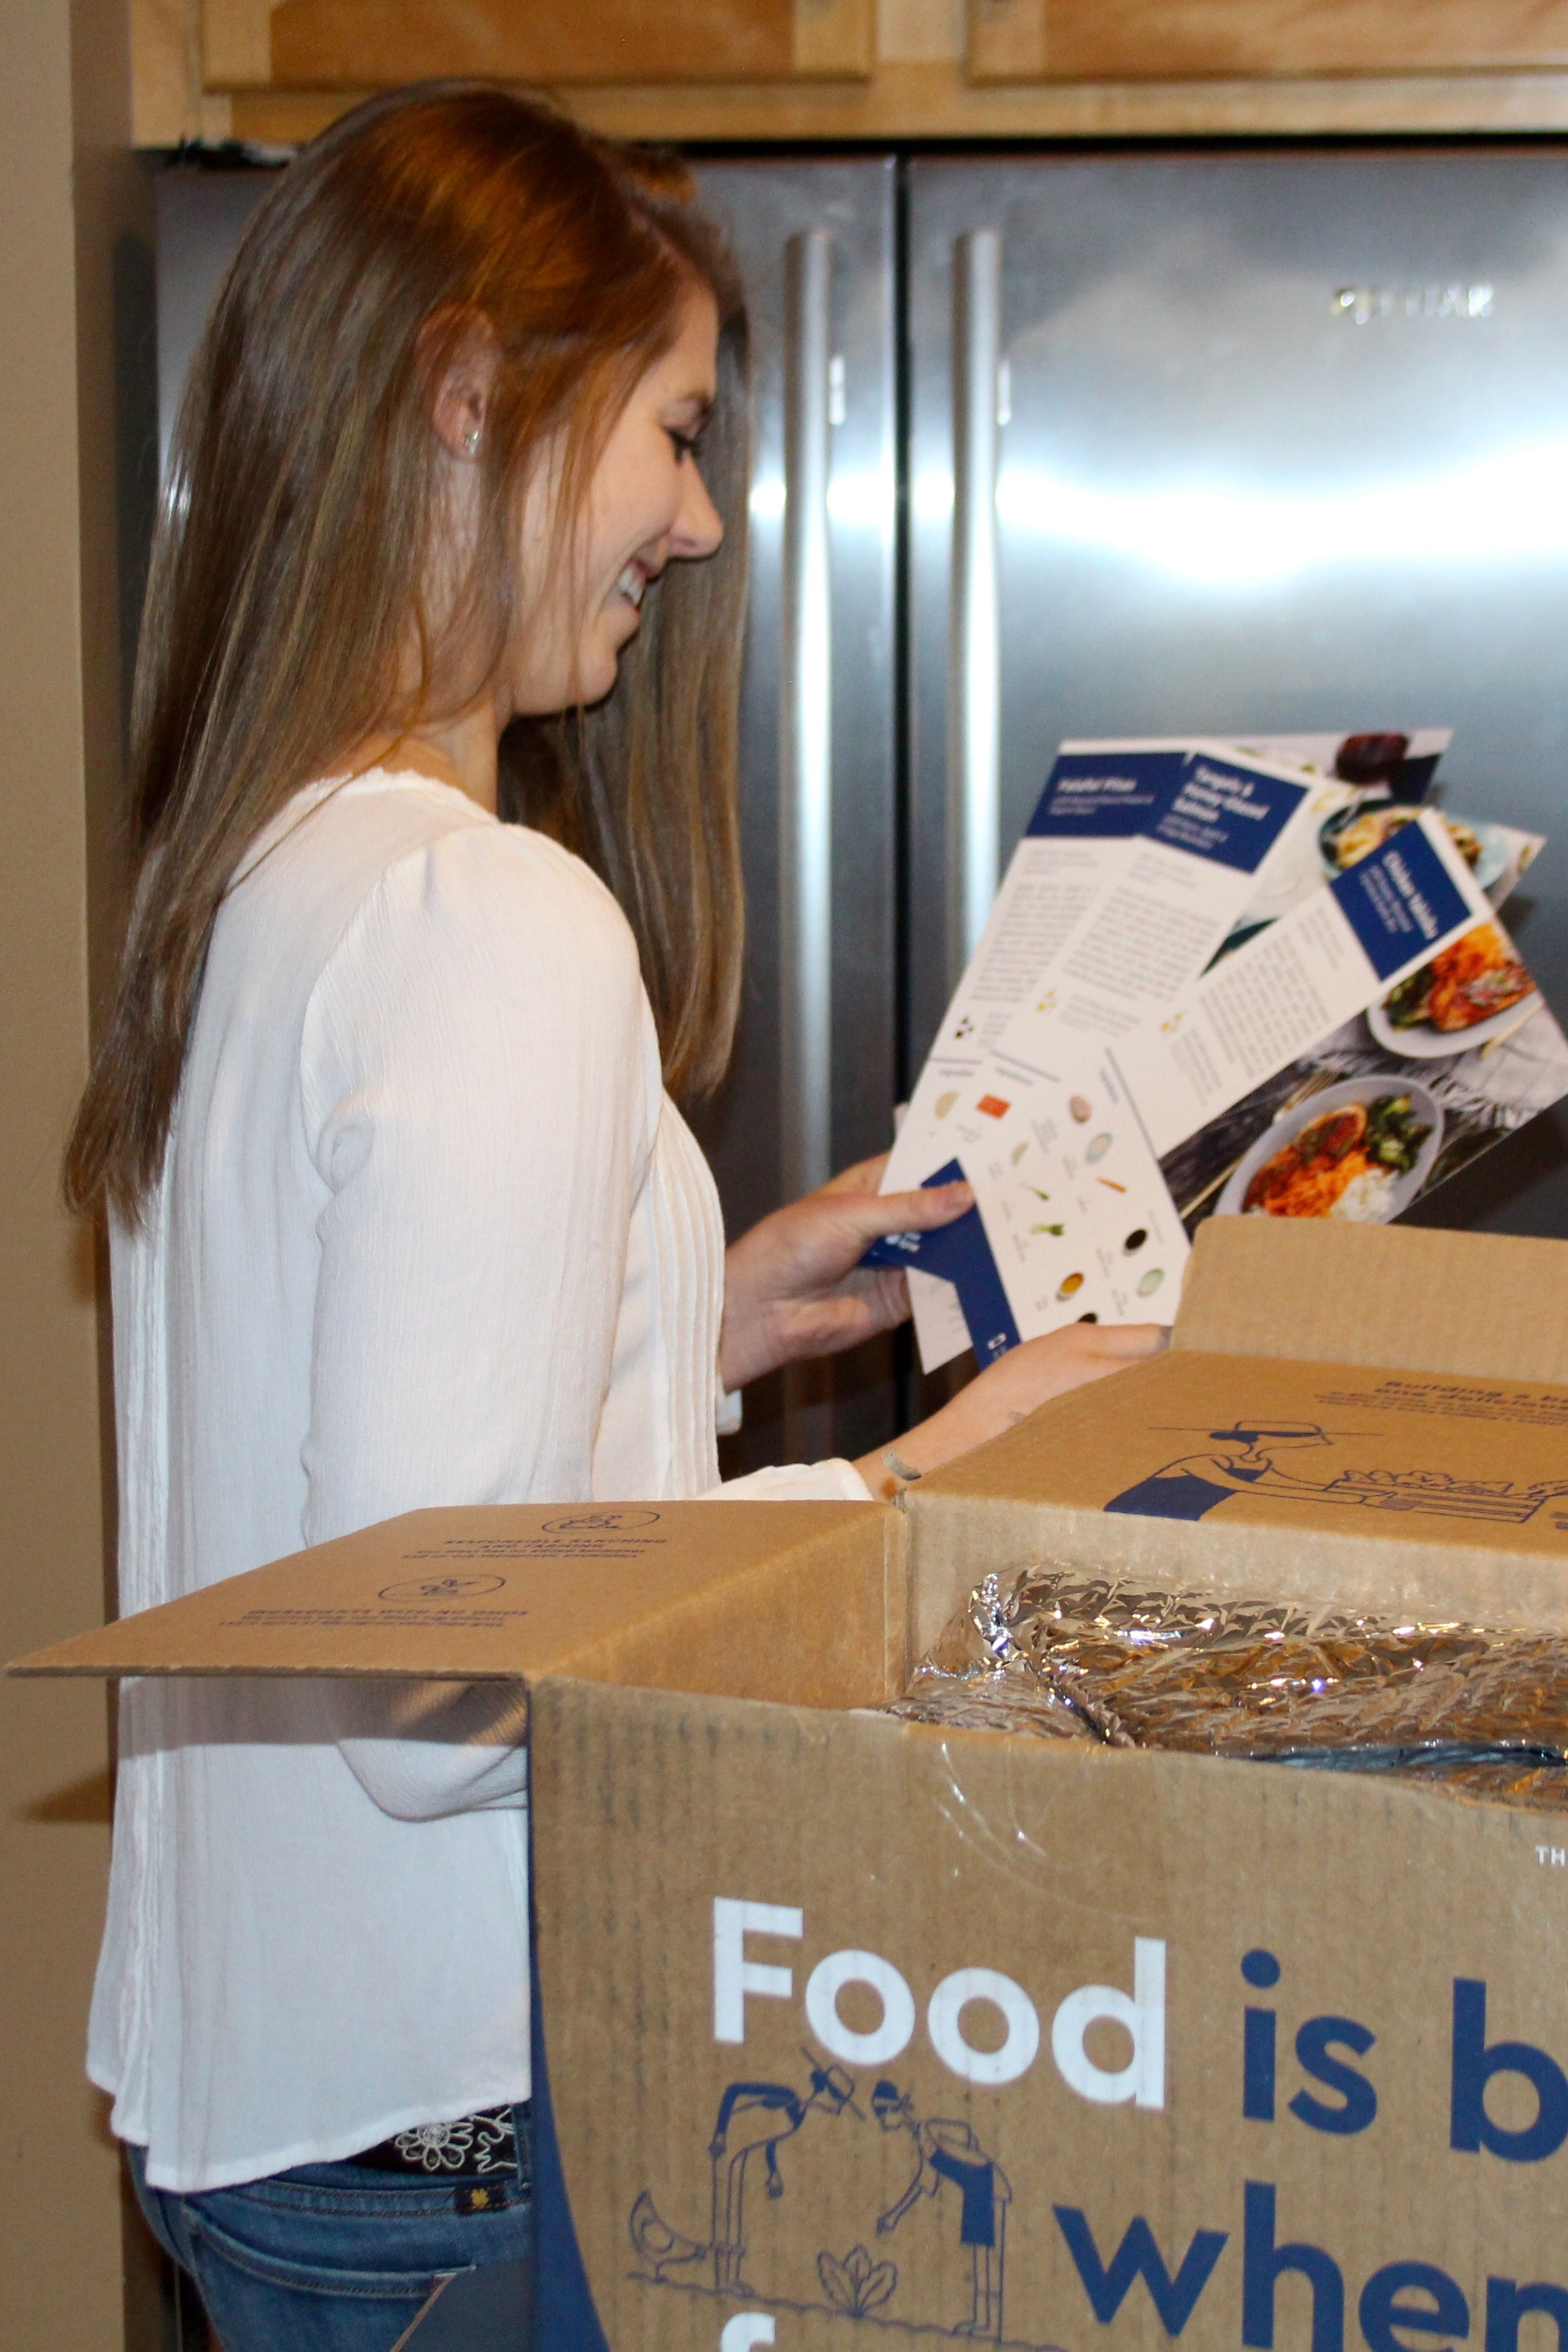 Blue apron questions - When I Got The Notification That My First Blue Apron Box Had Been Delivered Via Slice App I Was A Little Nervous It Was Mid Afternoon And I Wouldn T Be